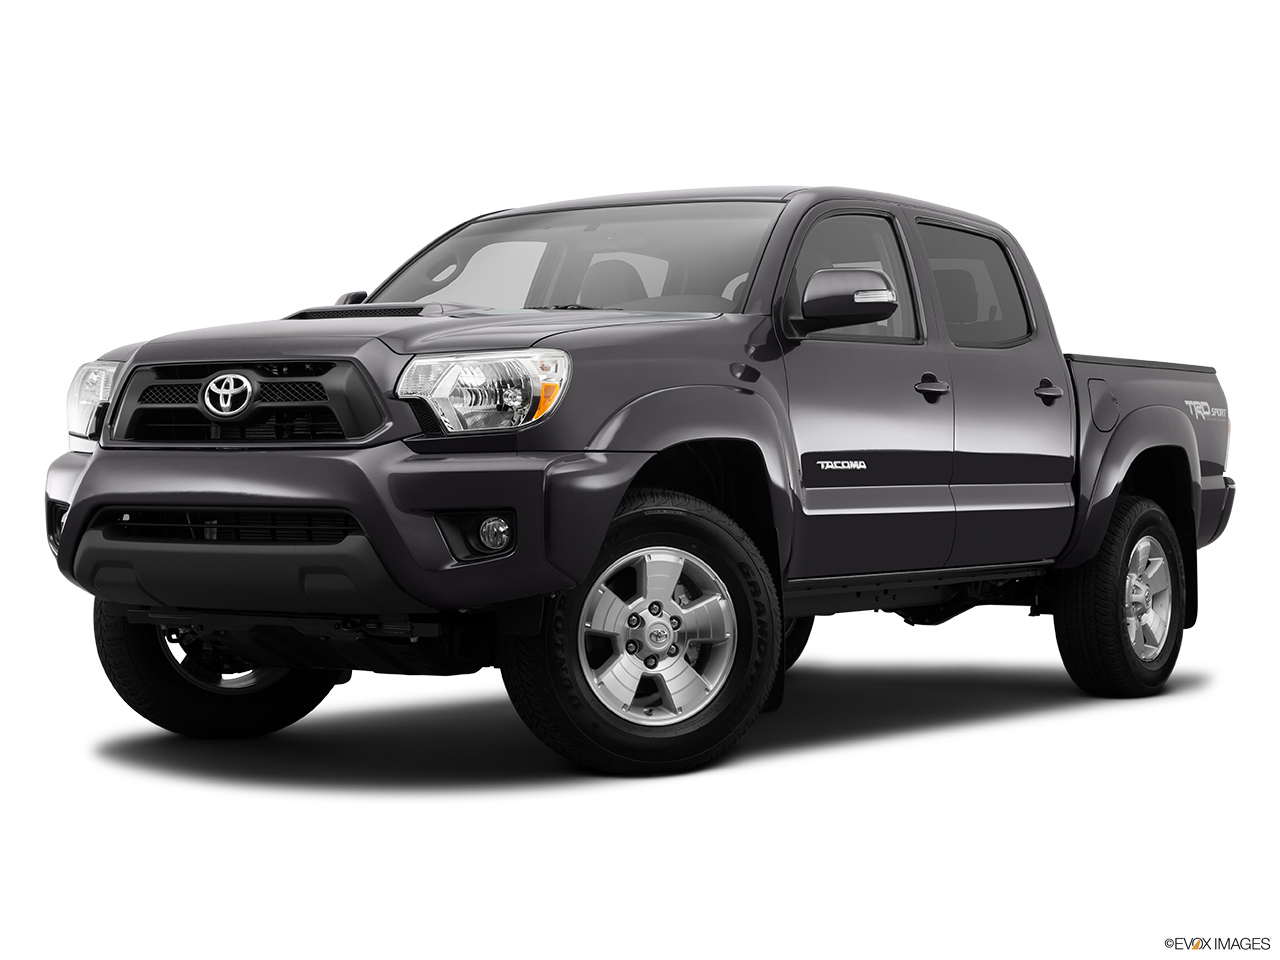 in trend quarter three cars motion access tacoma pro motor toyota cab front test first trd